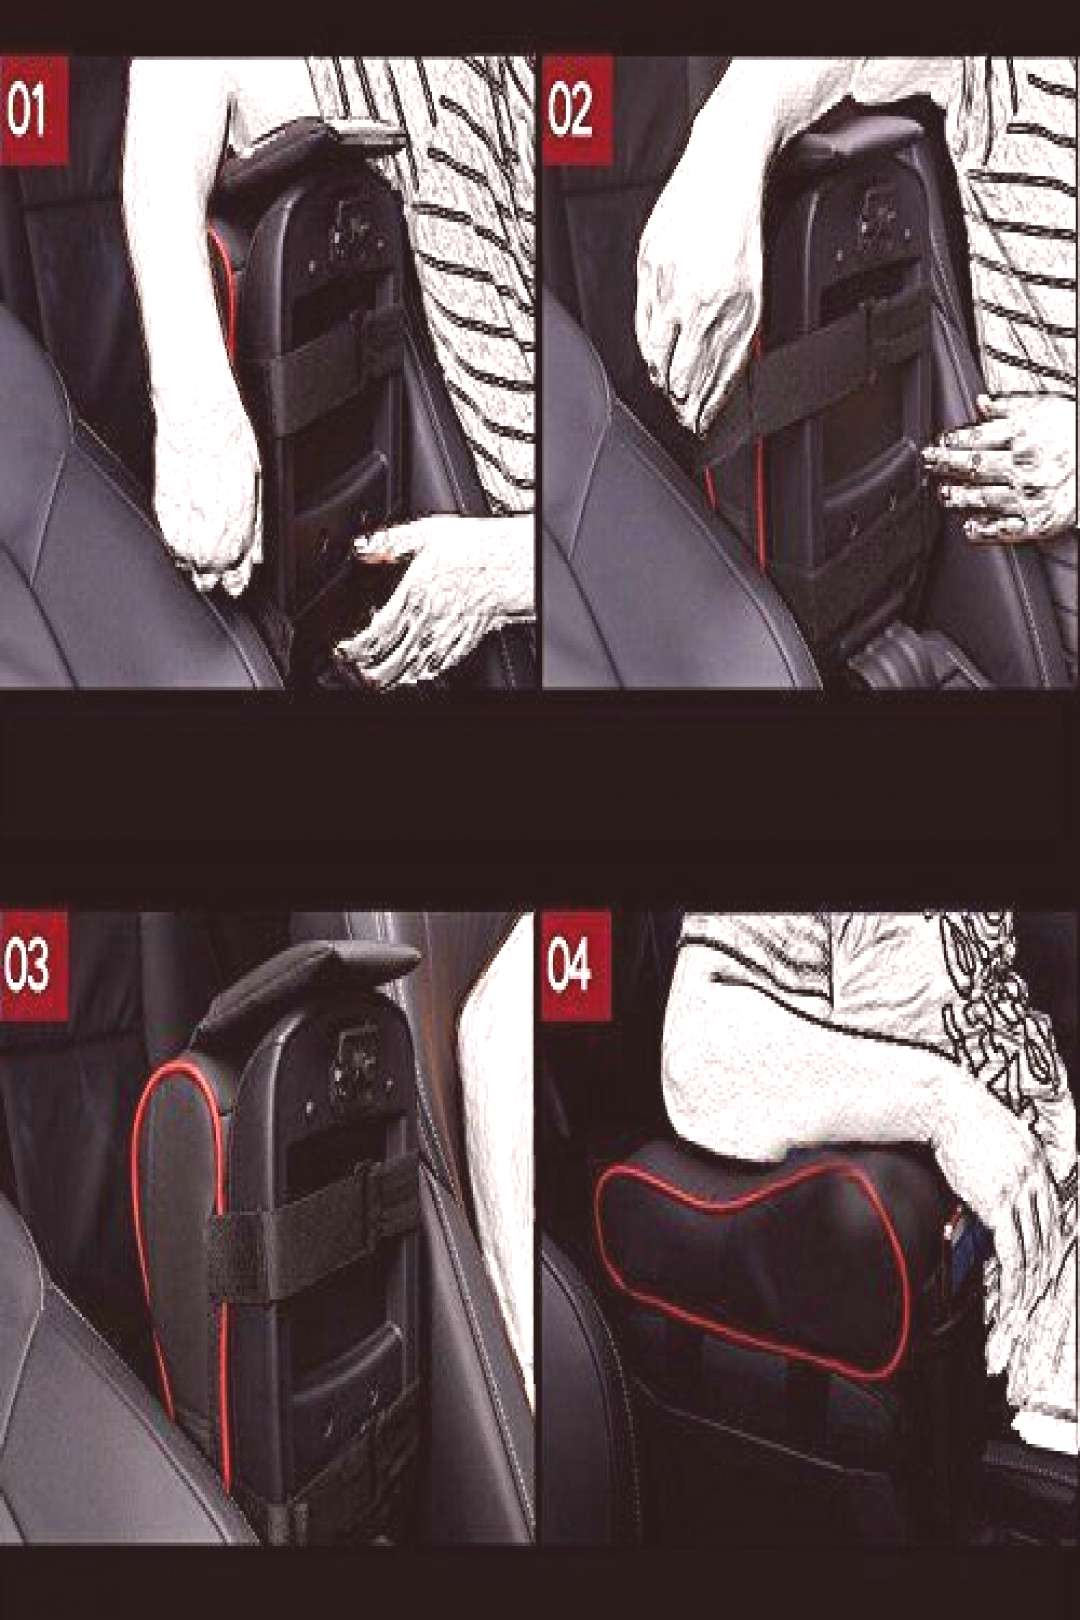 Armrest Center Consoles Cushion Cover for Toyota Camry Most Cars Suvs Best Price Car Parts Online#a